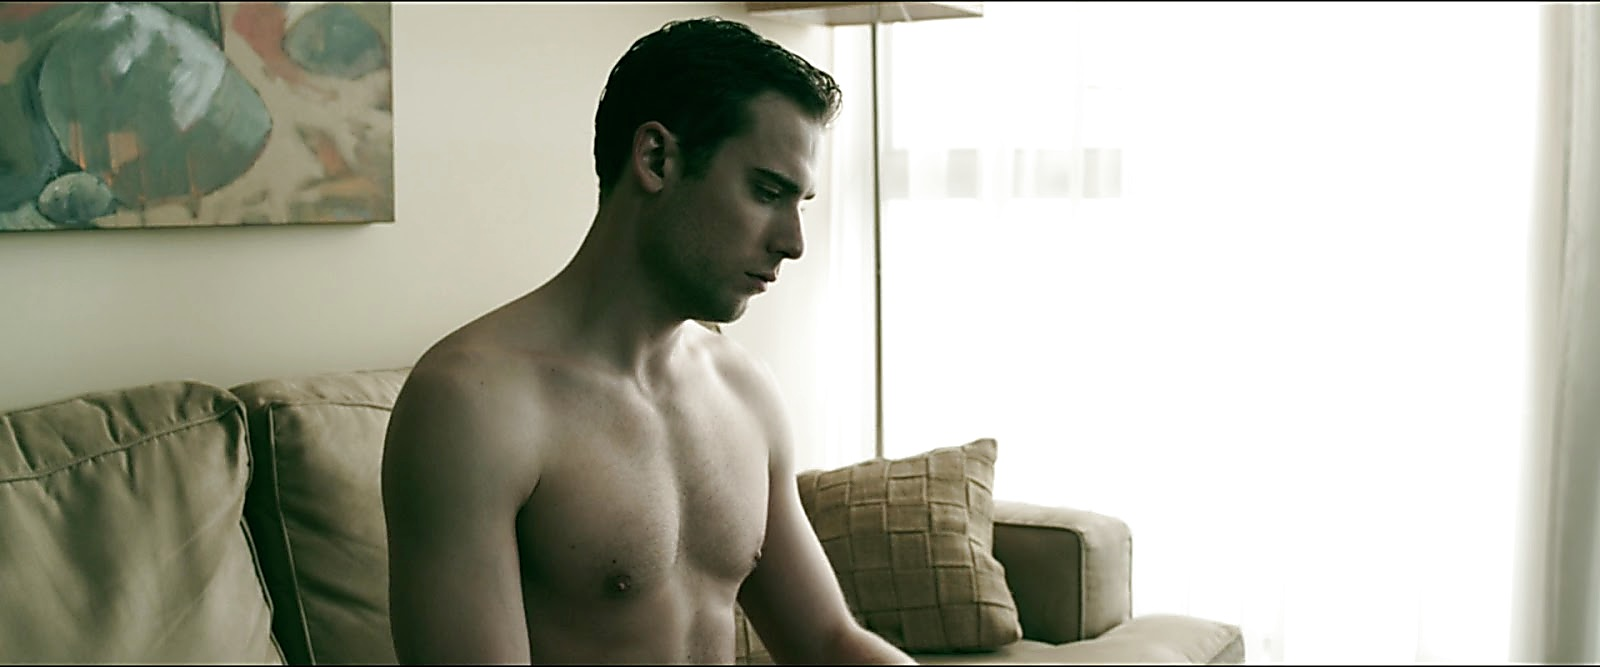 Dustin Milligan sexy shirtless scene February 25, 2019, 8am